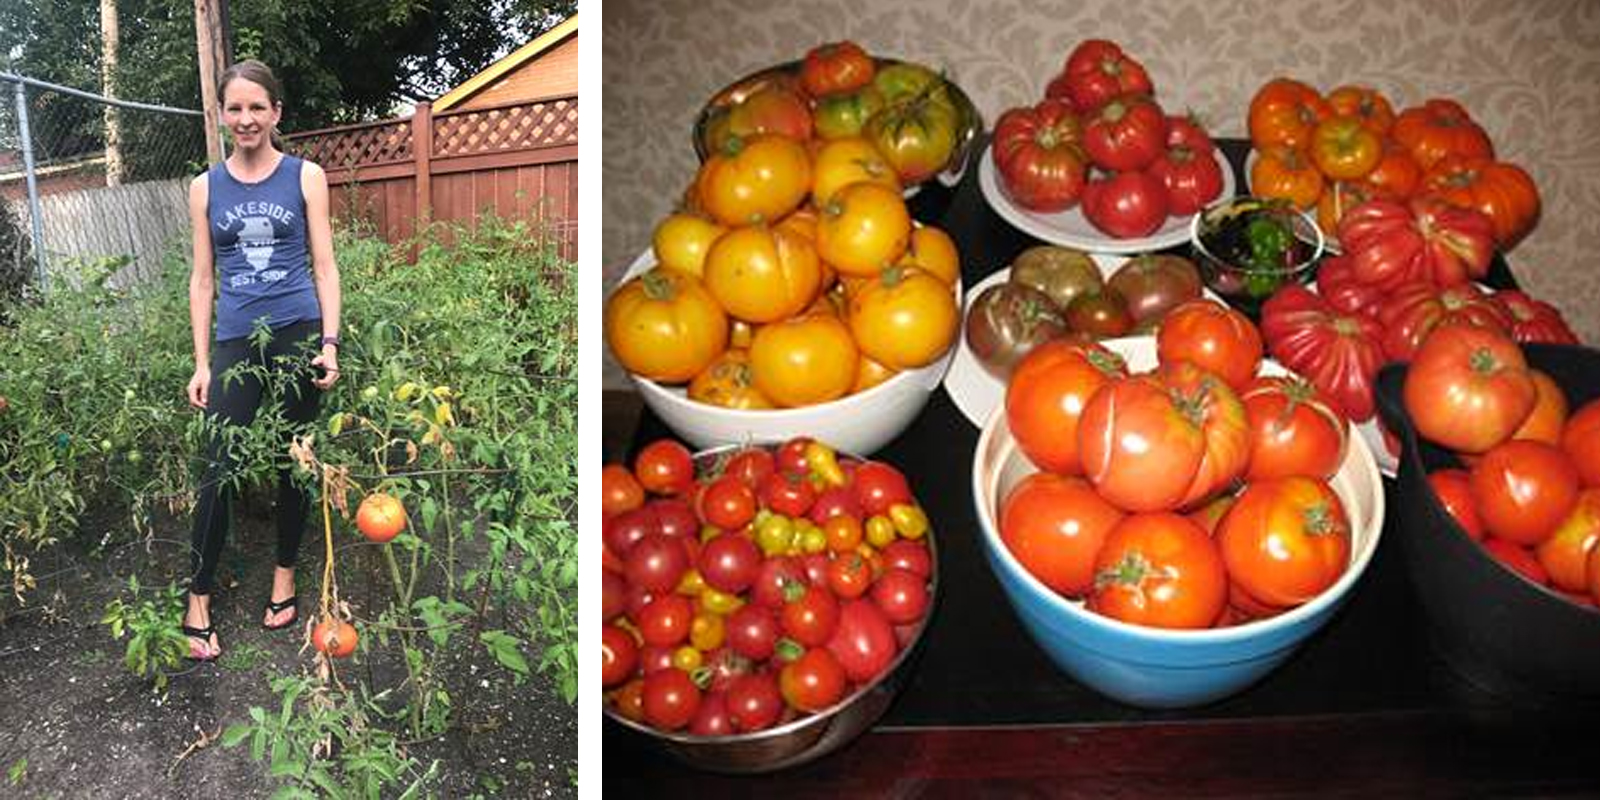 Left: Our questioner Sara Strasser, who noted that she has more photos of her produce than herself, stands in her vegetable garden. Right: The fruits of Sara's labor. (Courtesy Sara Strasser)